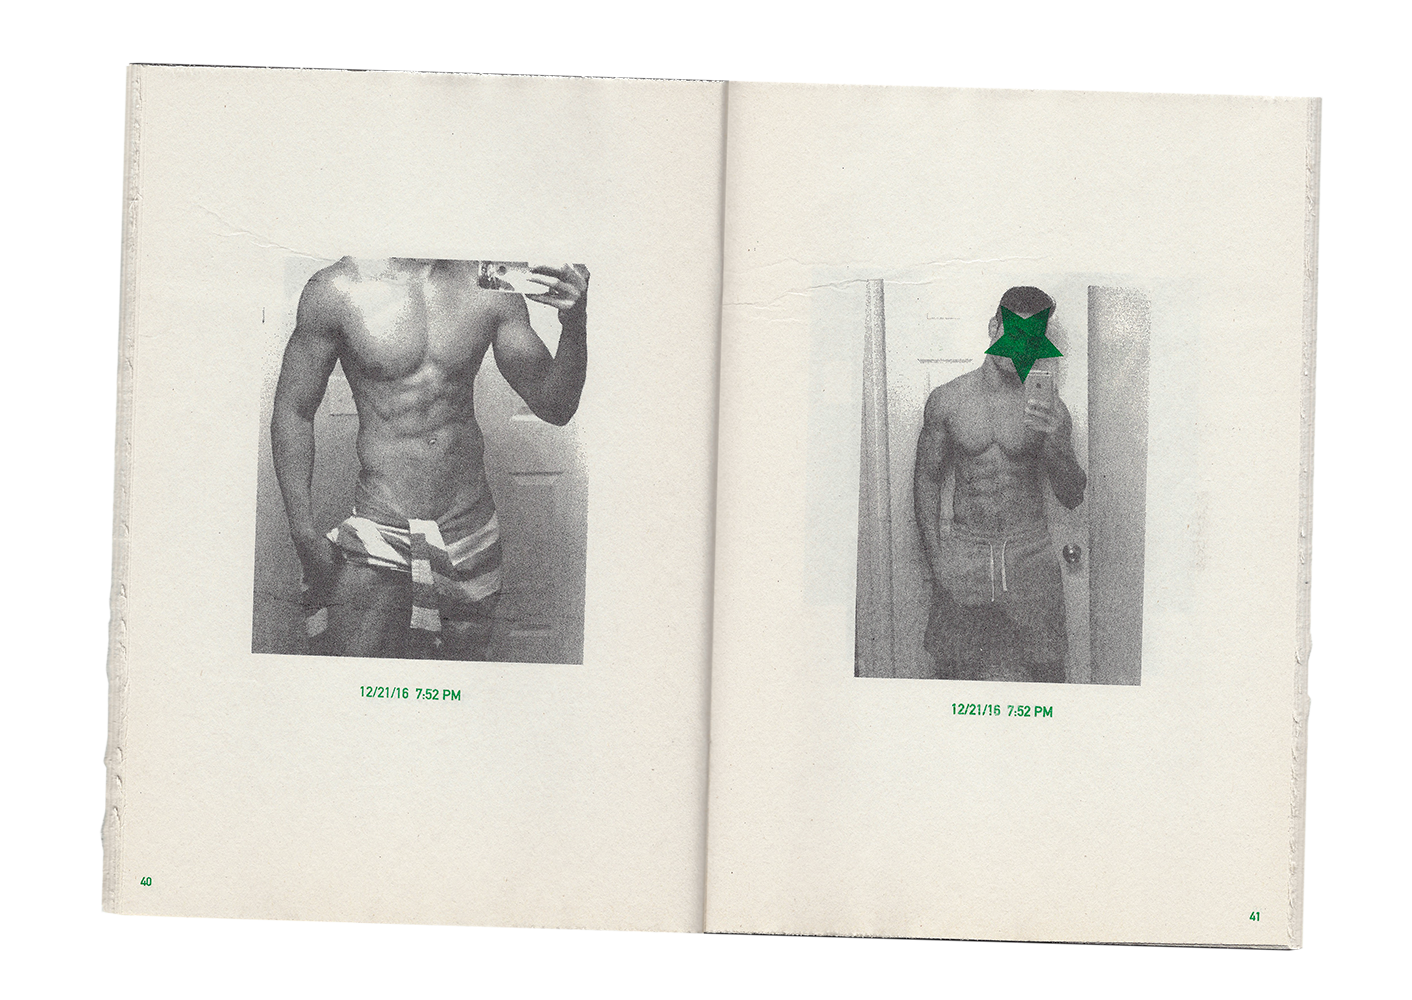 Hot_Nudes_Spread7_Crooked.png